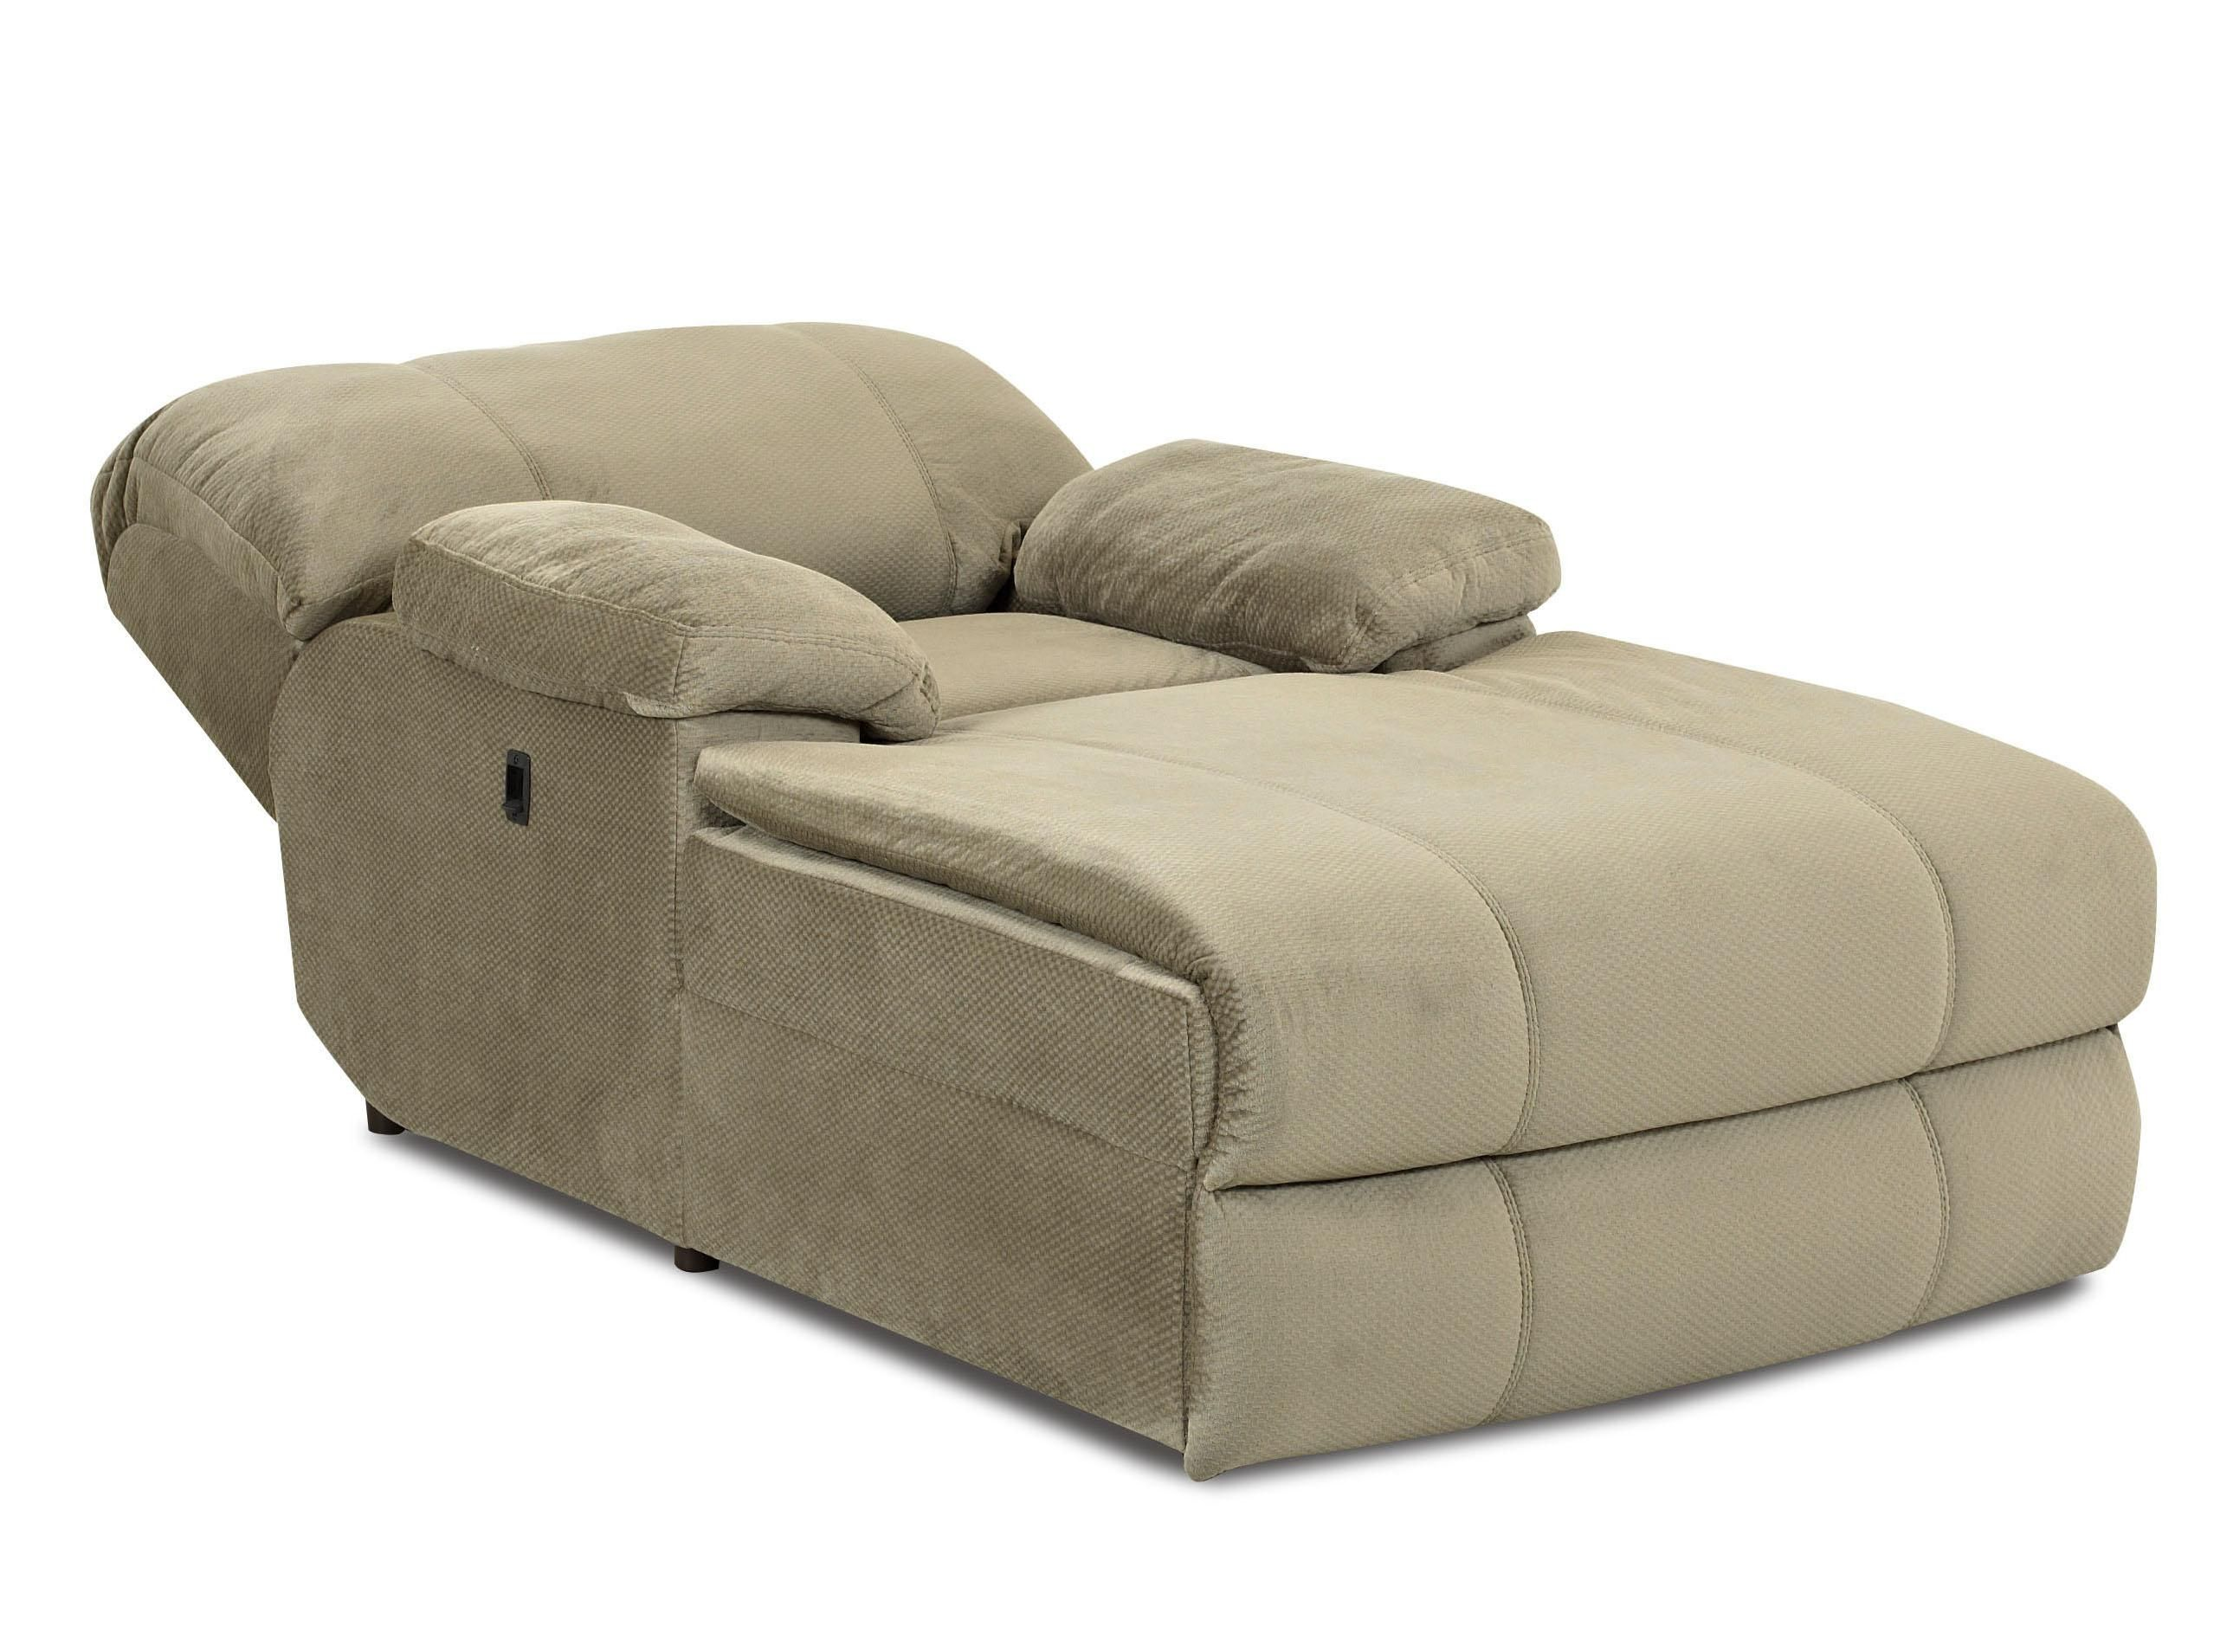 Indoor oversized chaise lounge kensington reclining for Chaise lounge chair living room